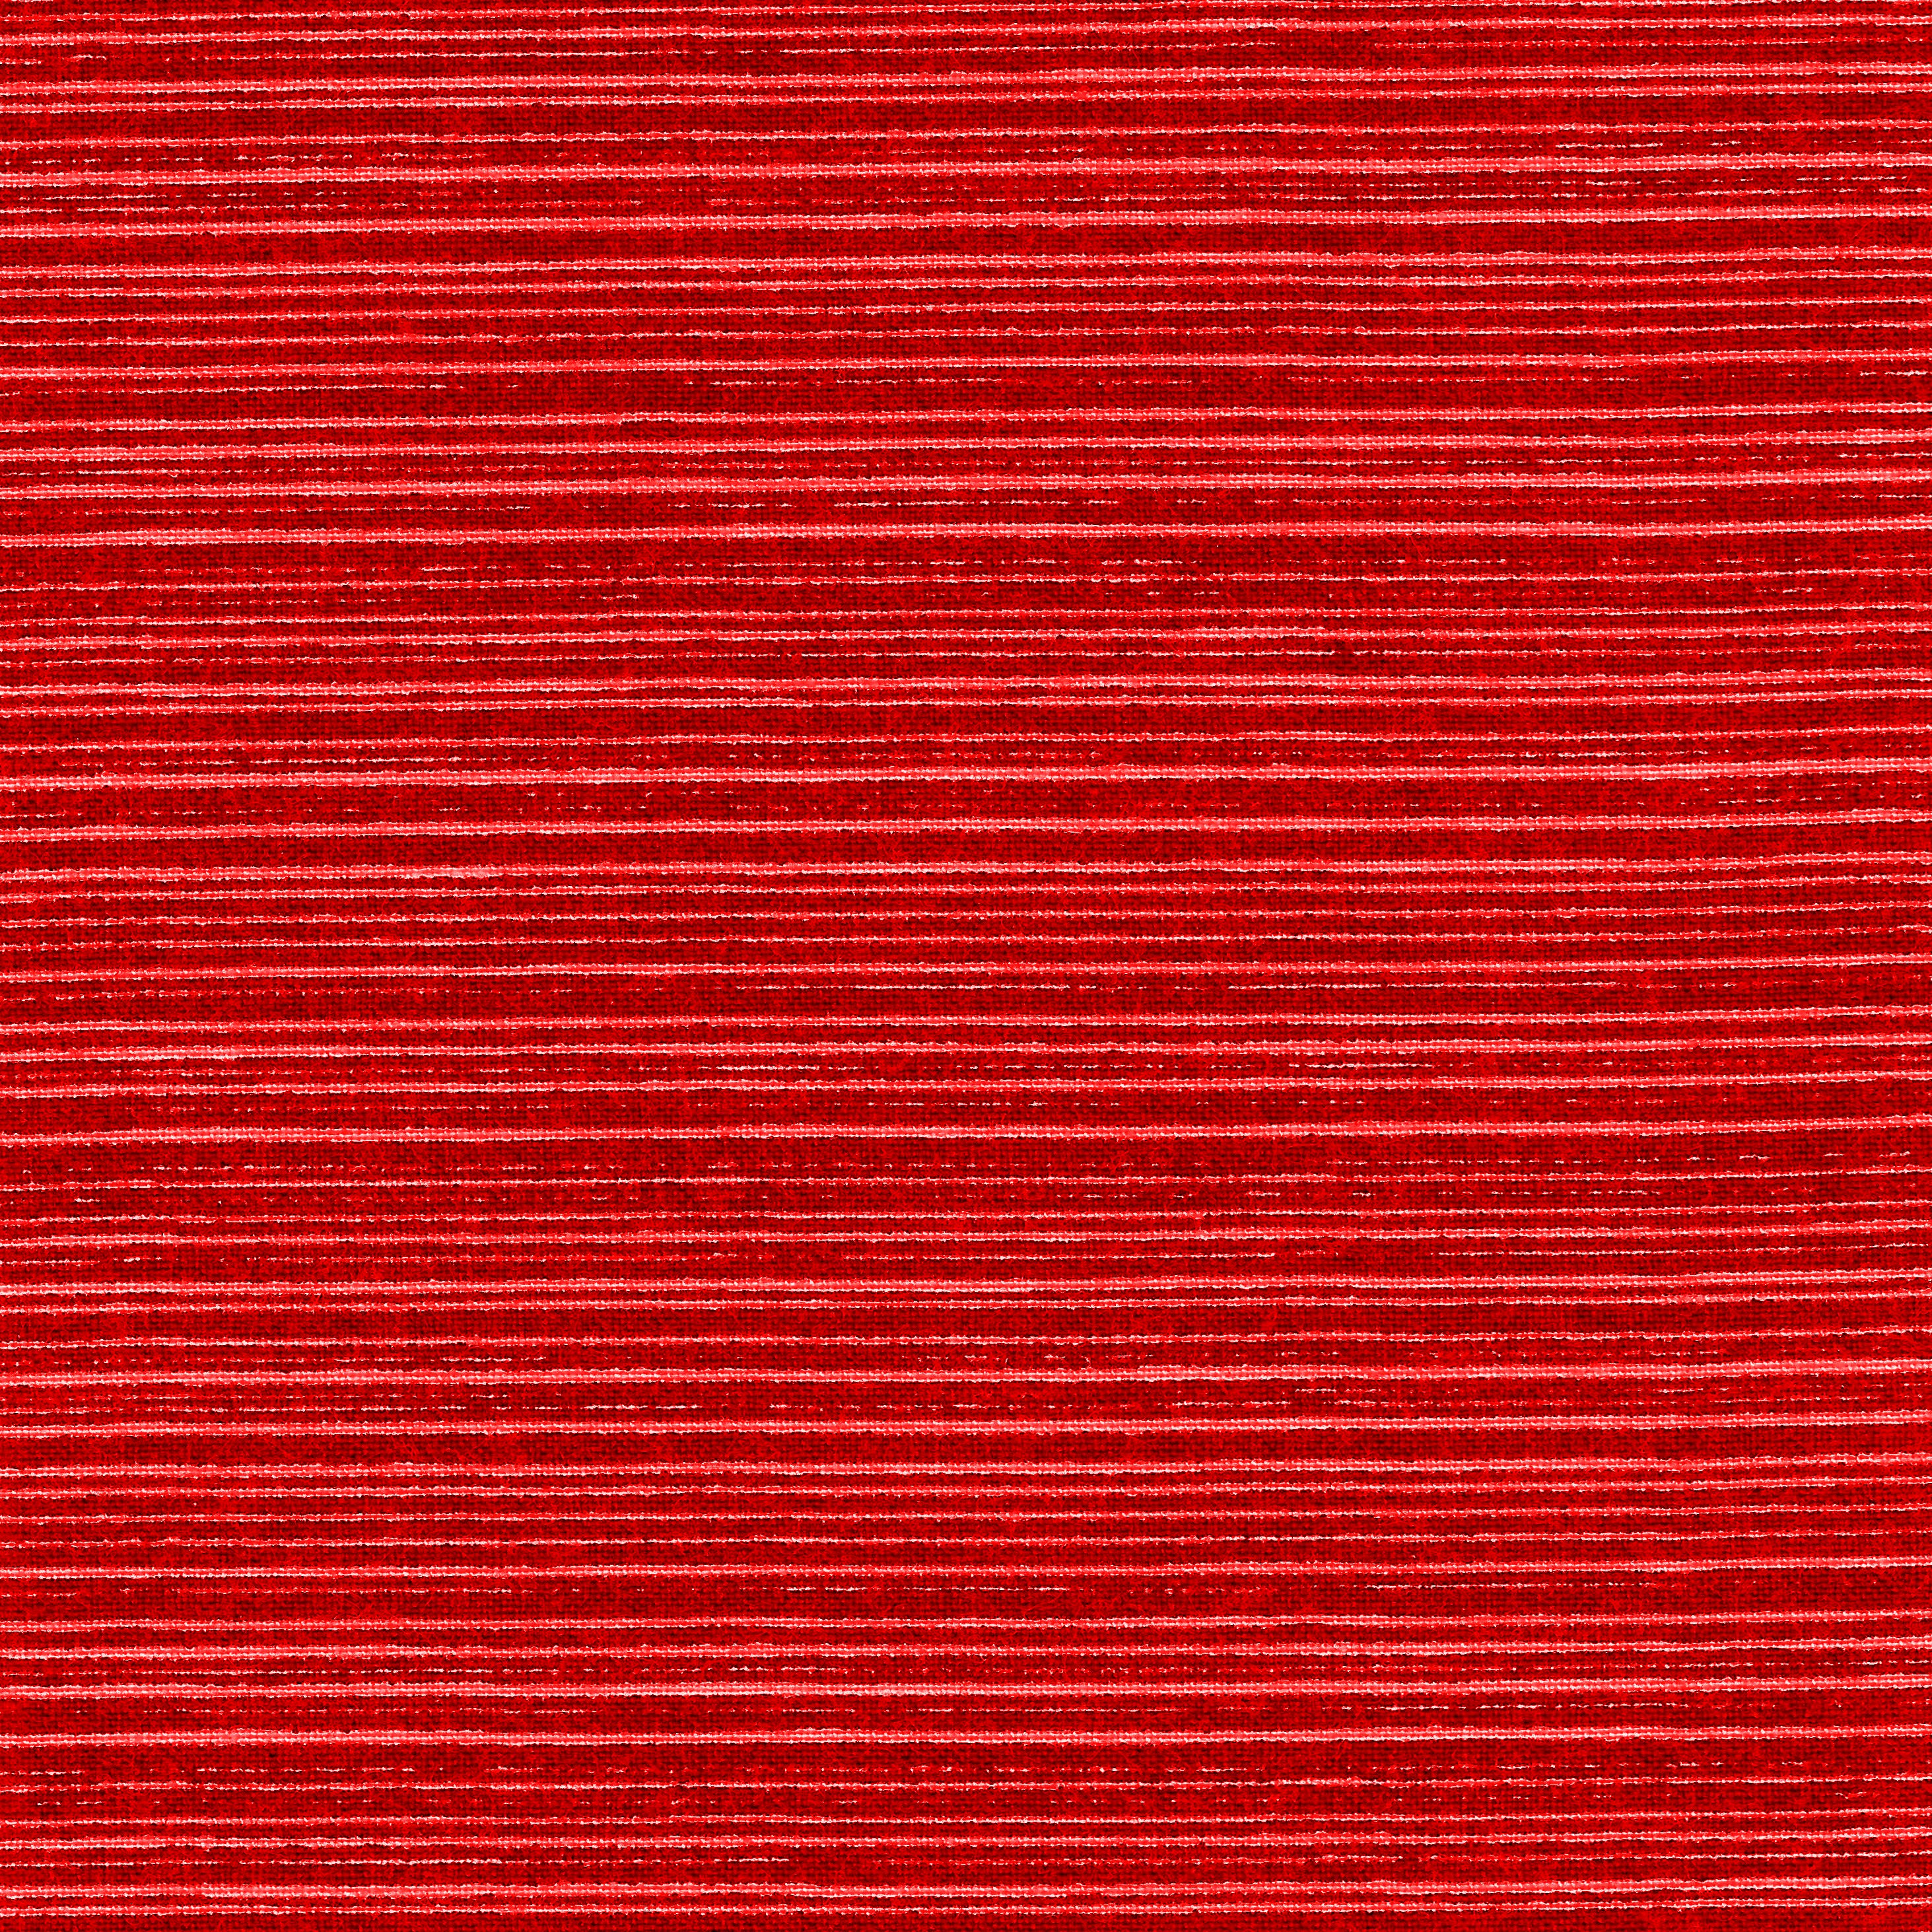 Red Striped Fabric Texture Picture Free Photograph